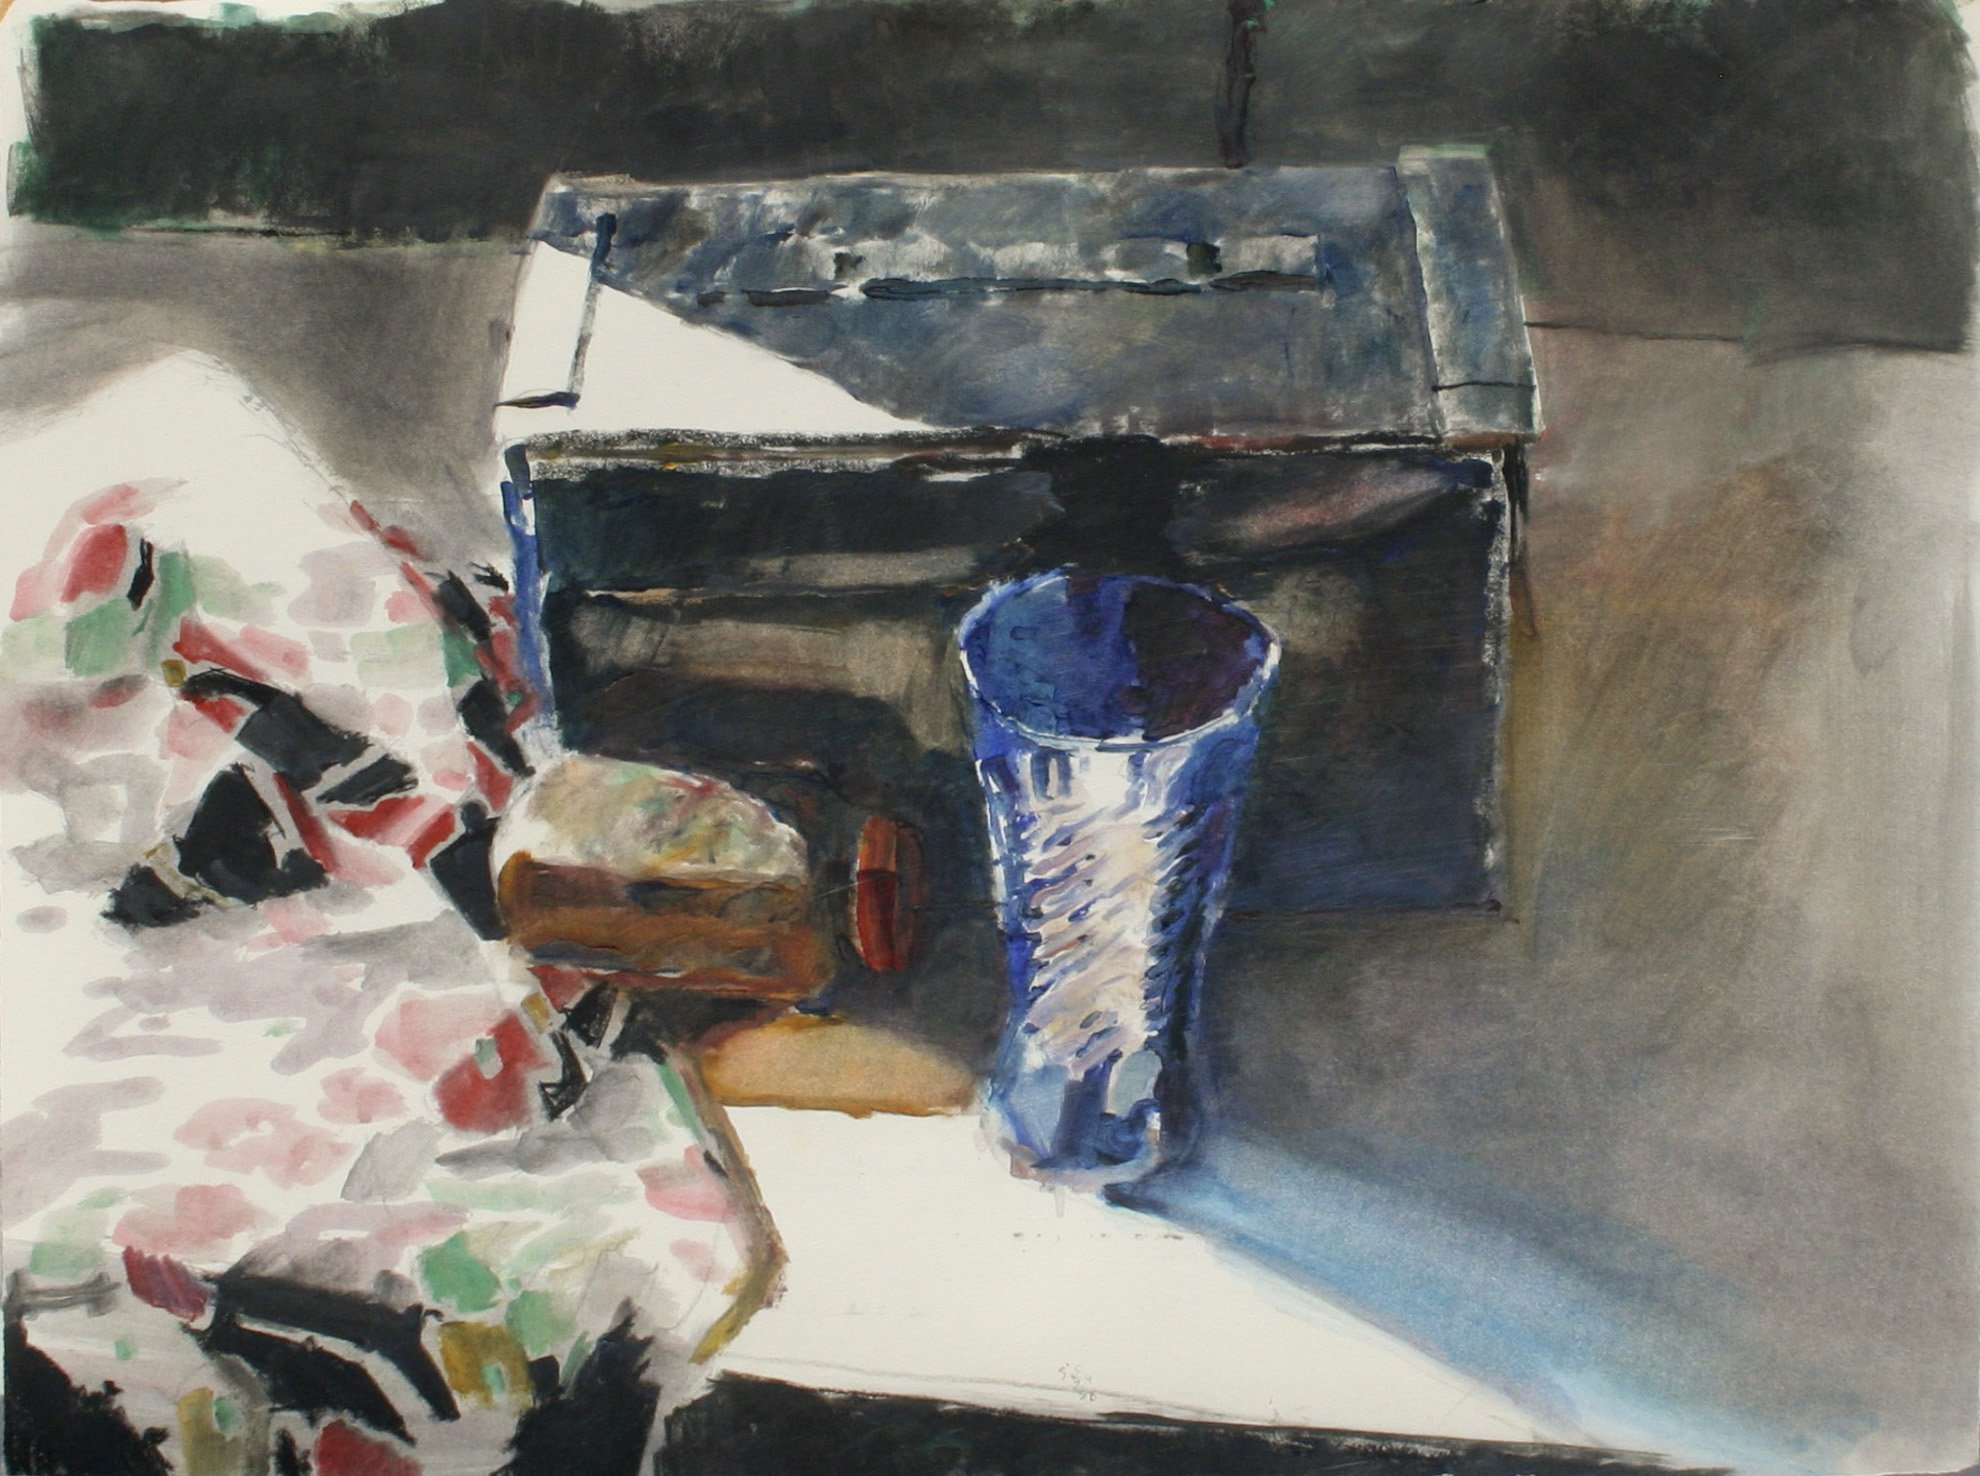 Silva, Jerald – Still Life With Ordnance Box